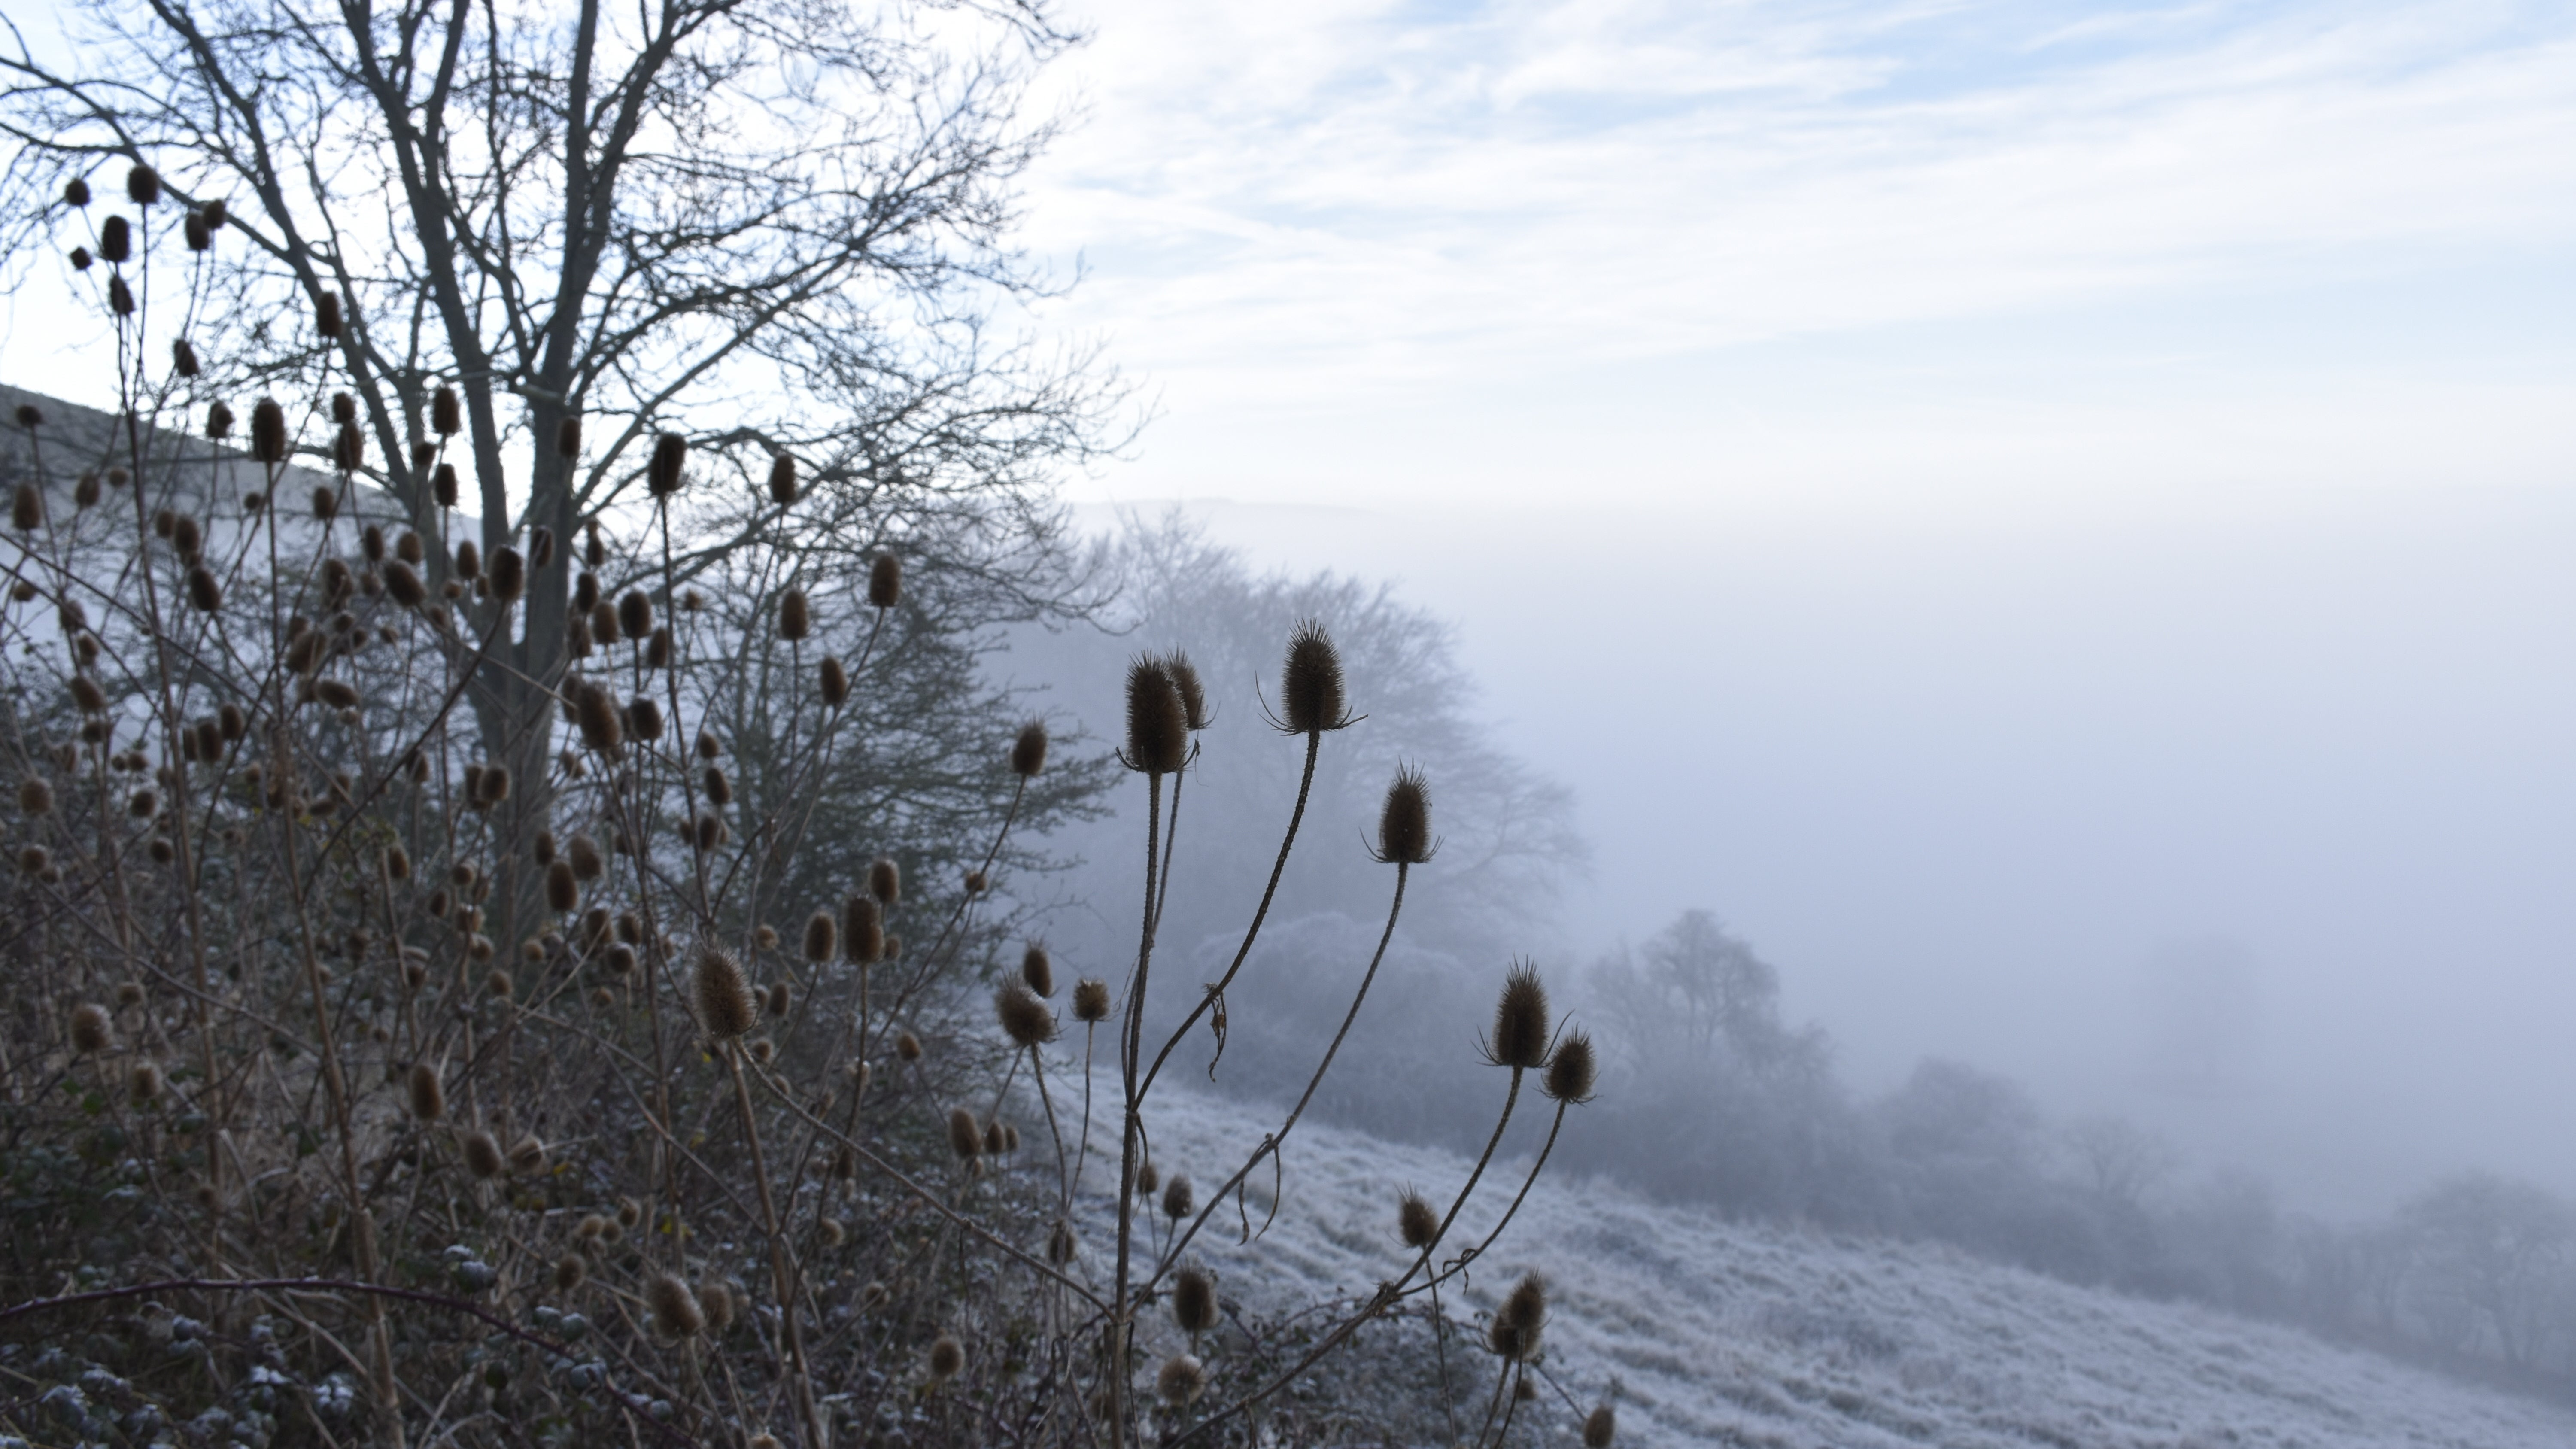 Teasels in the mist on Hambledon Hill